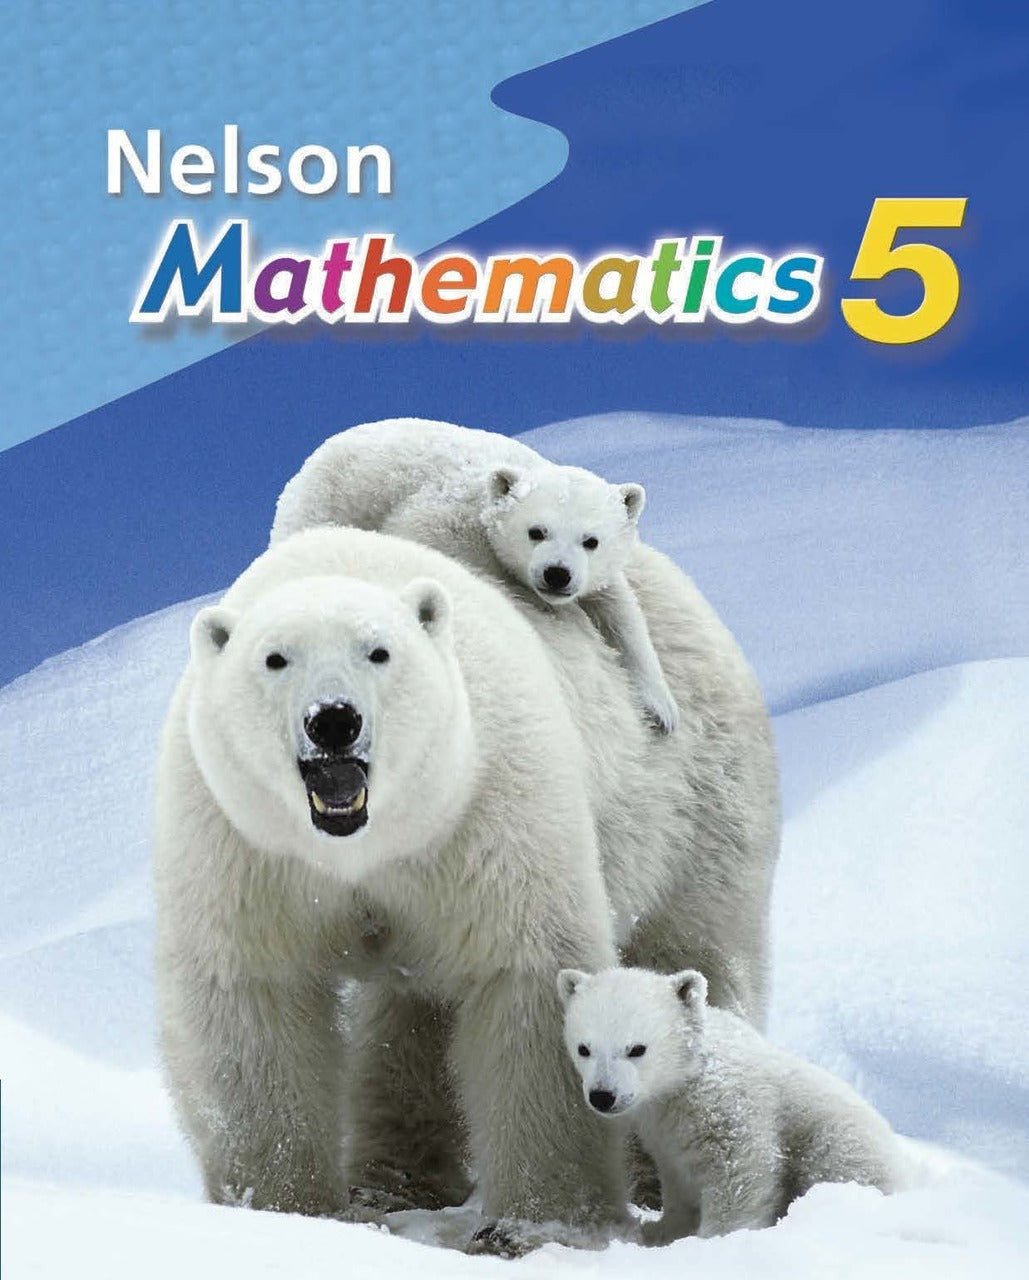 Nelson Mathematics 5 Student Book: Student Text & Online Student Text PDFs